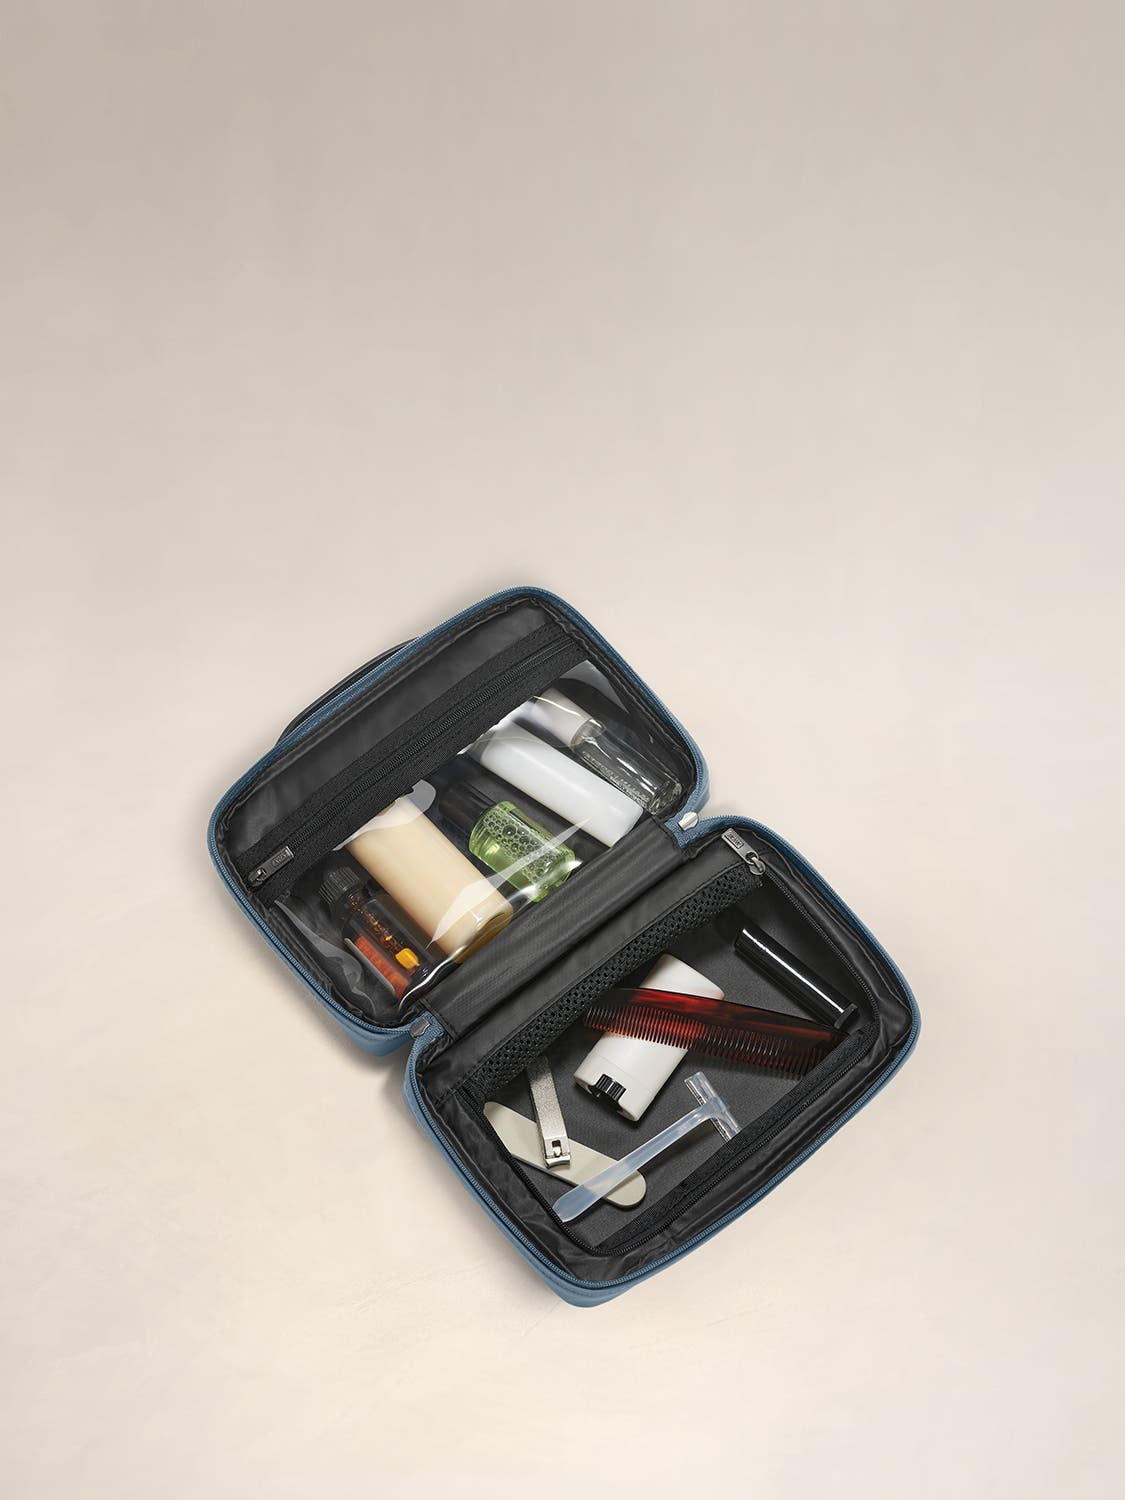 Inside view of a small toiletry kit in coast with interior pockets shown and full of travel toiletries.